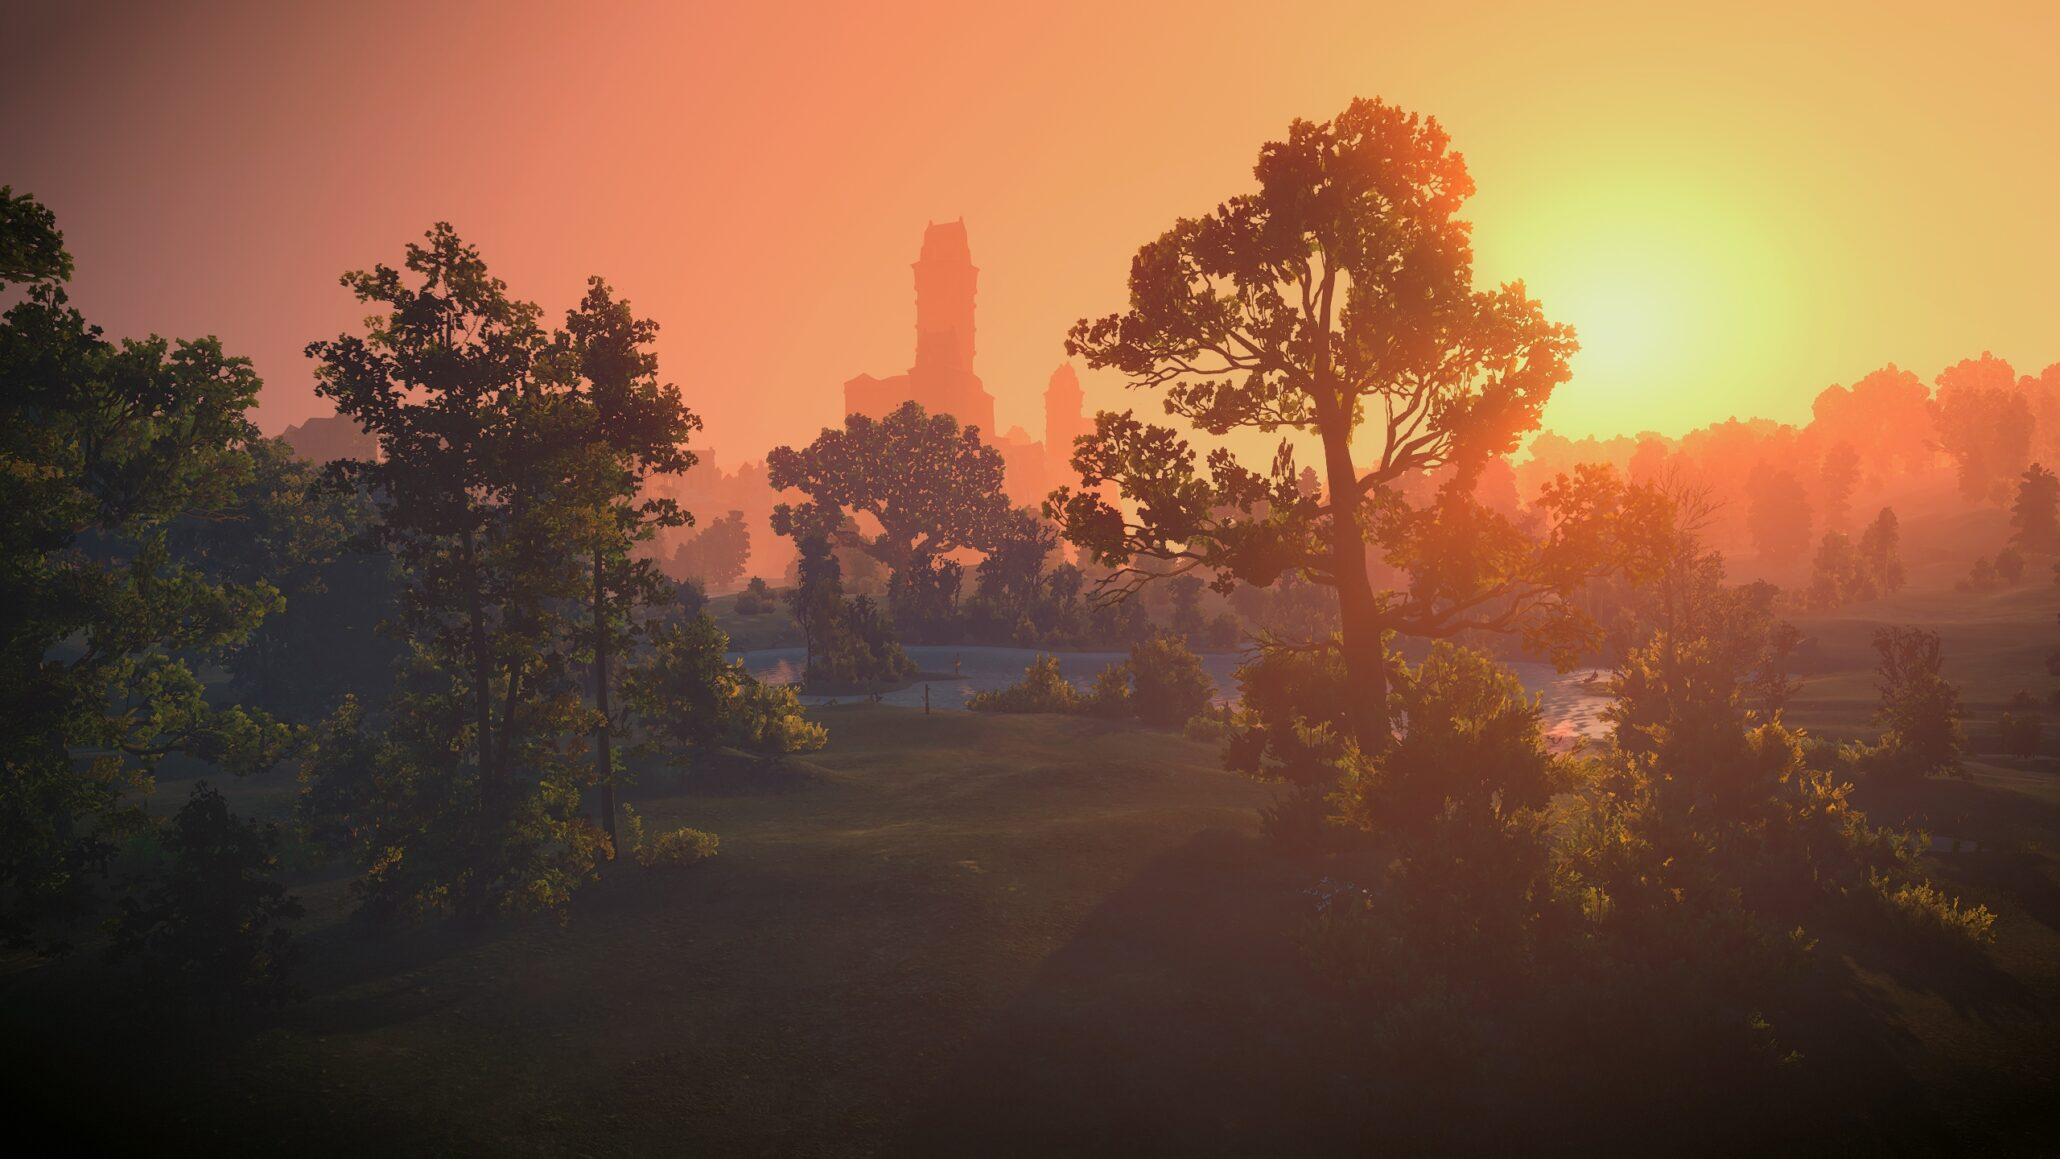 The Witcher 3 New Mod Vastly Improves Trees' Level Of Detail